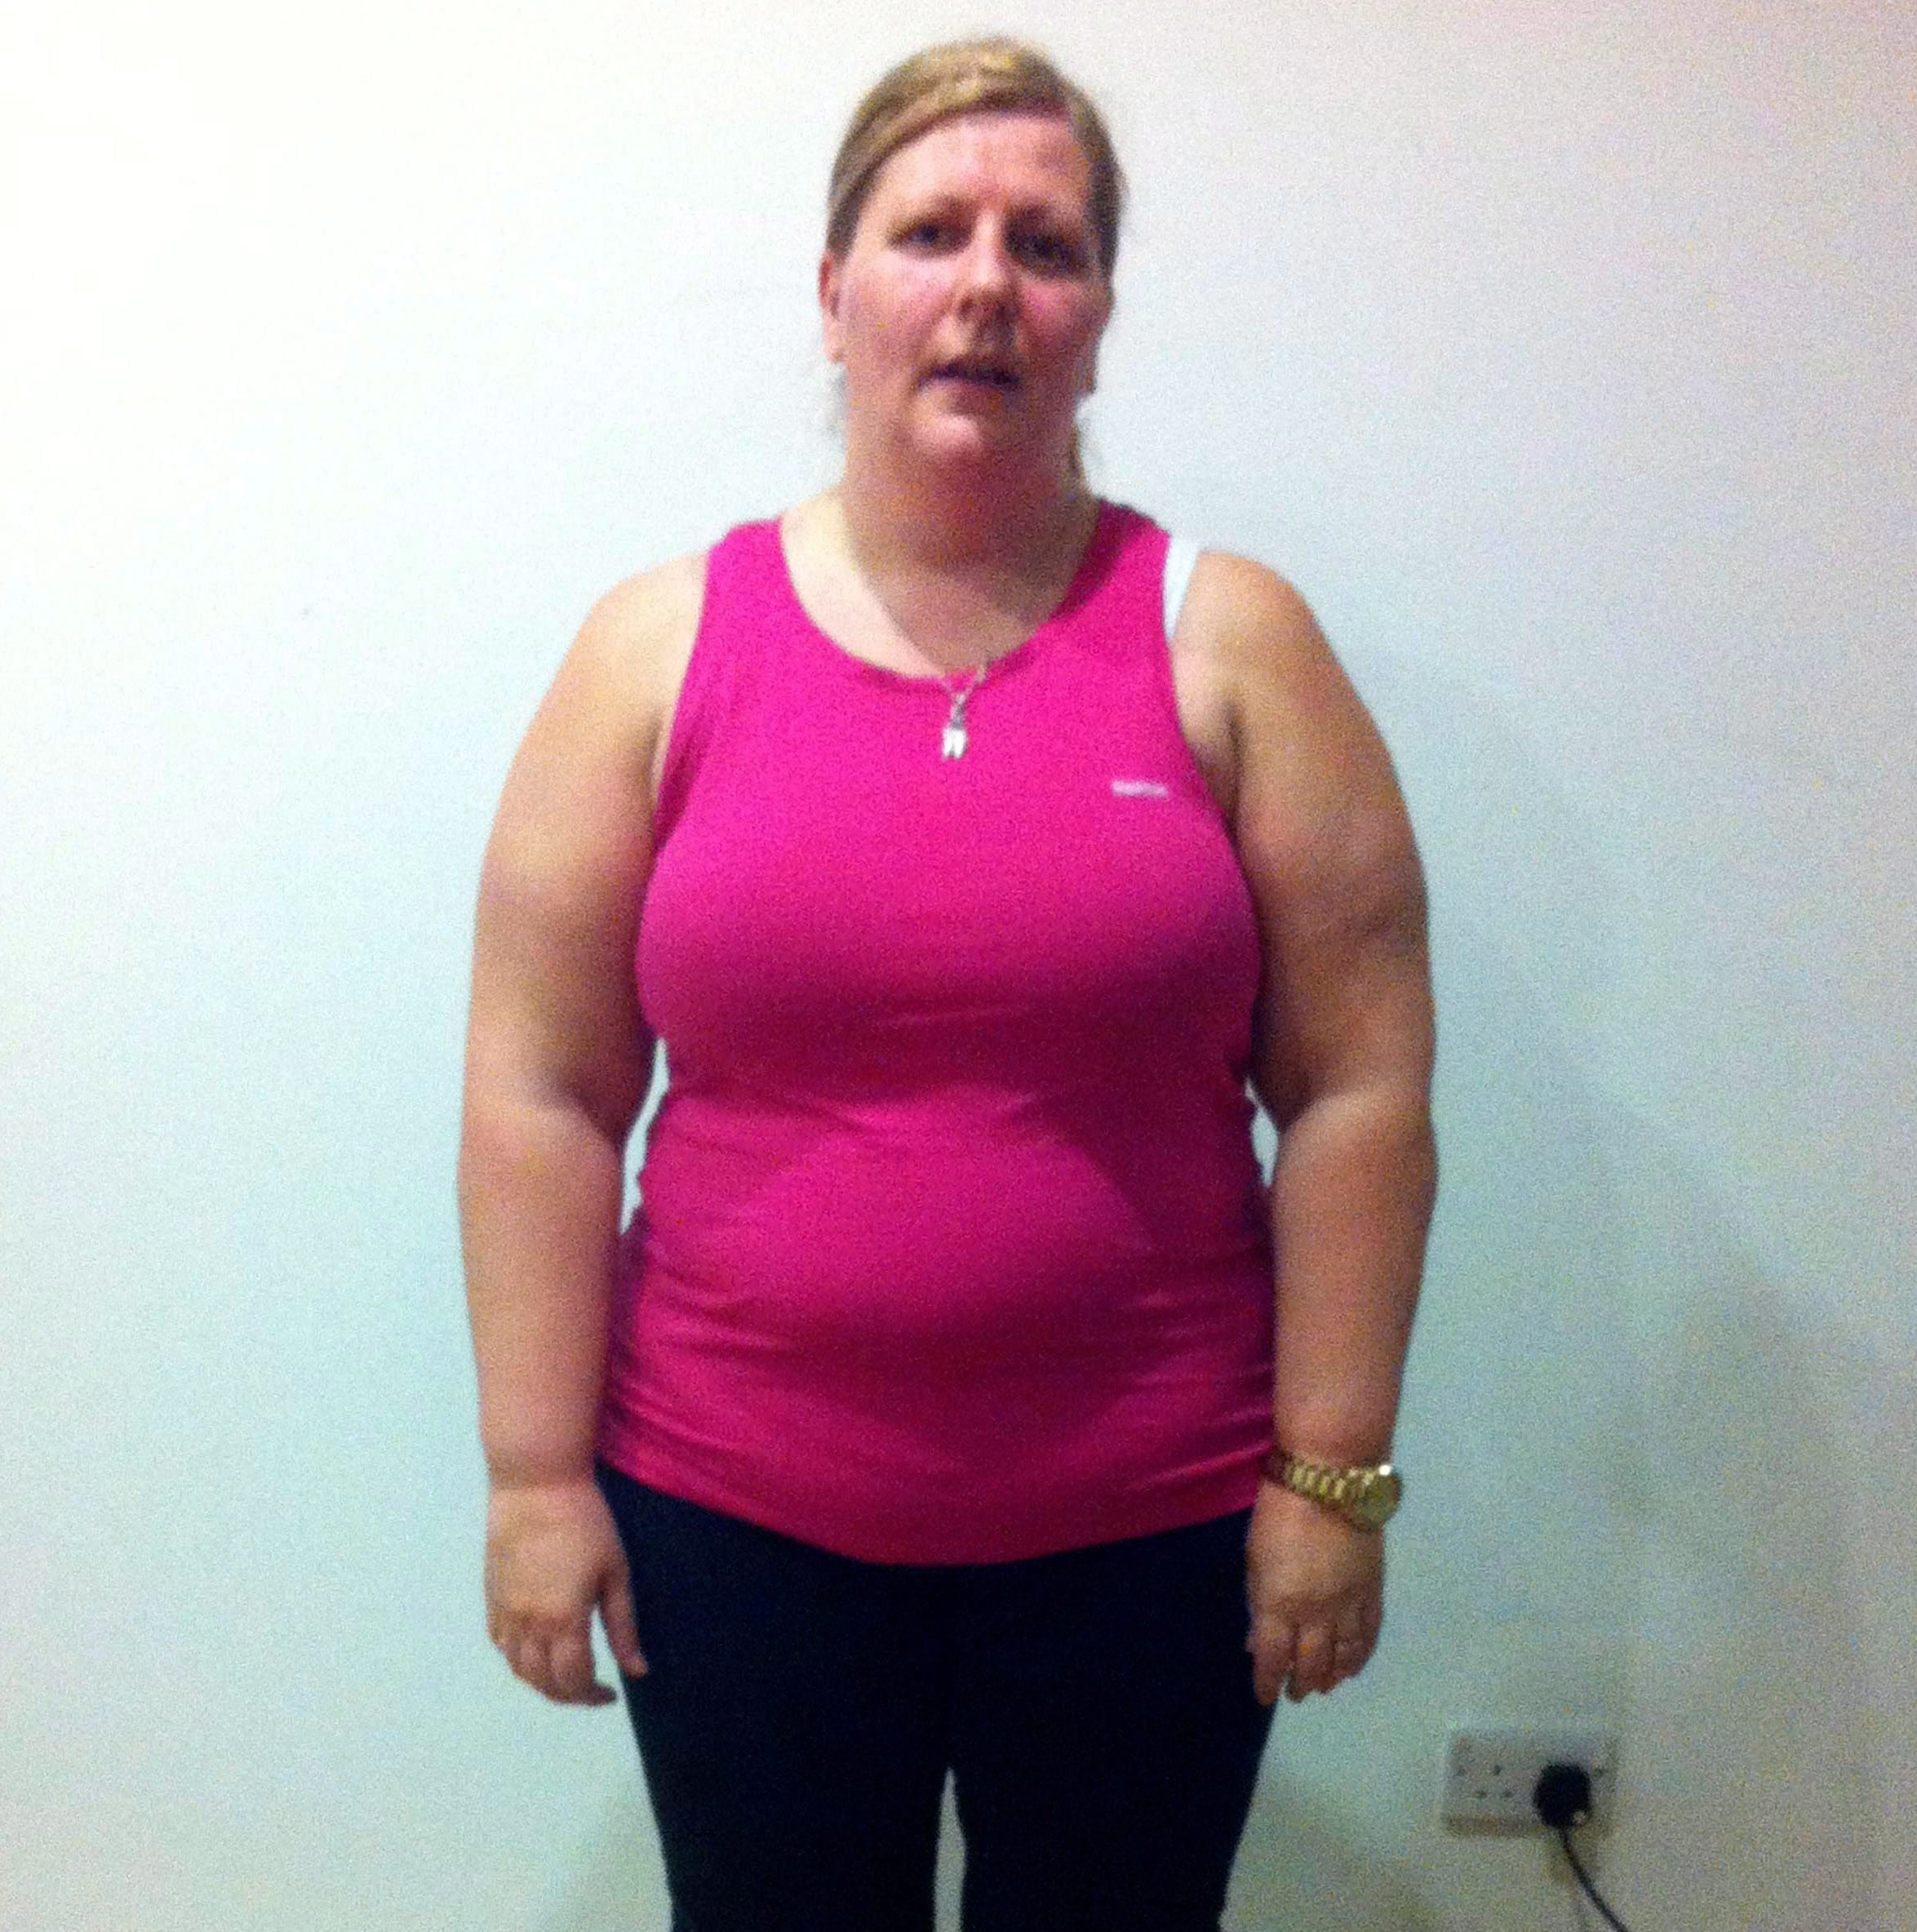 Quick weight loss center lighthouse point